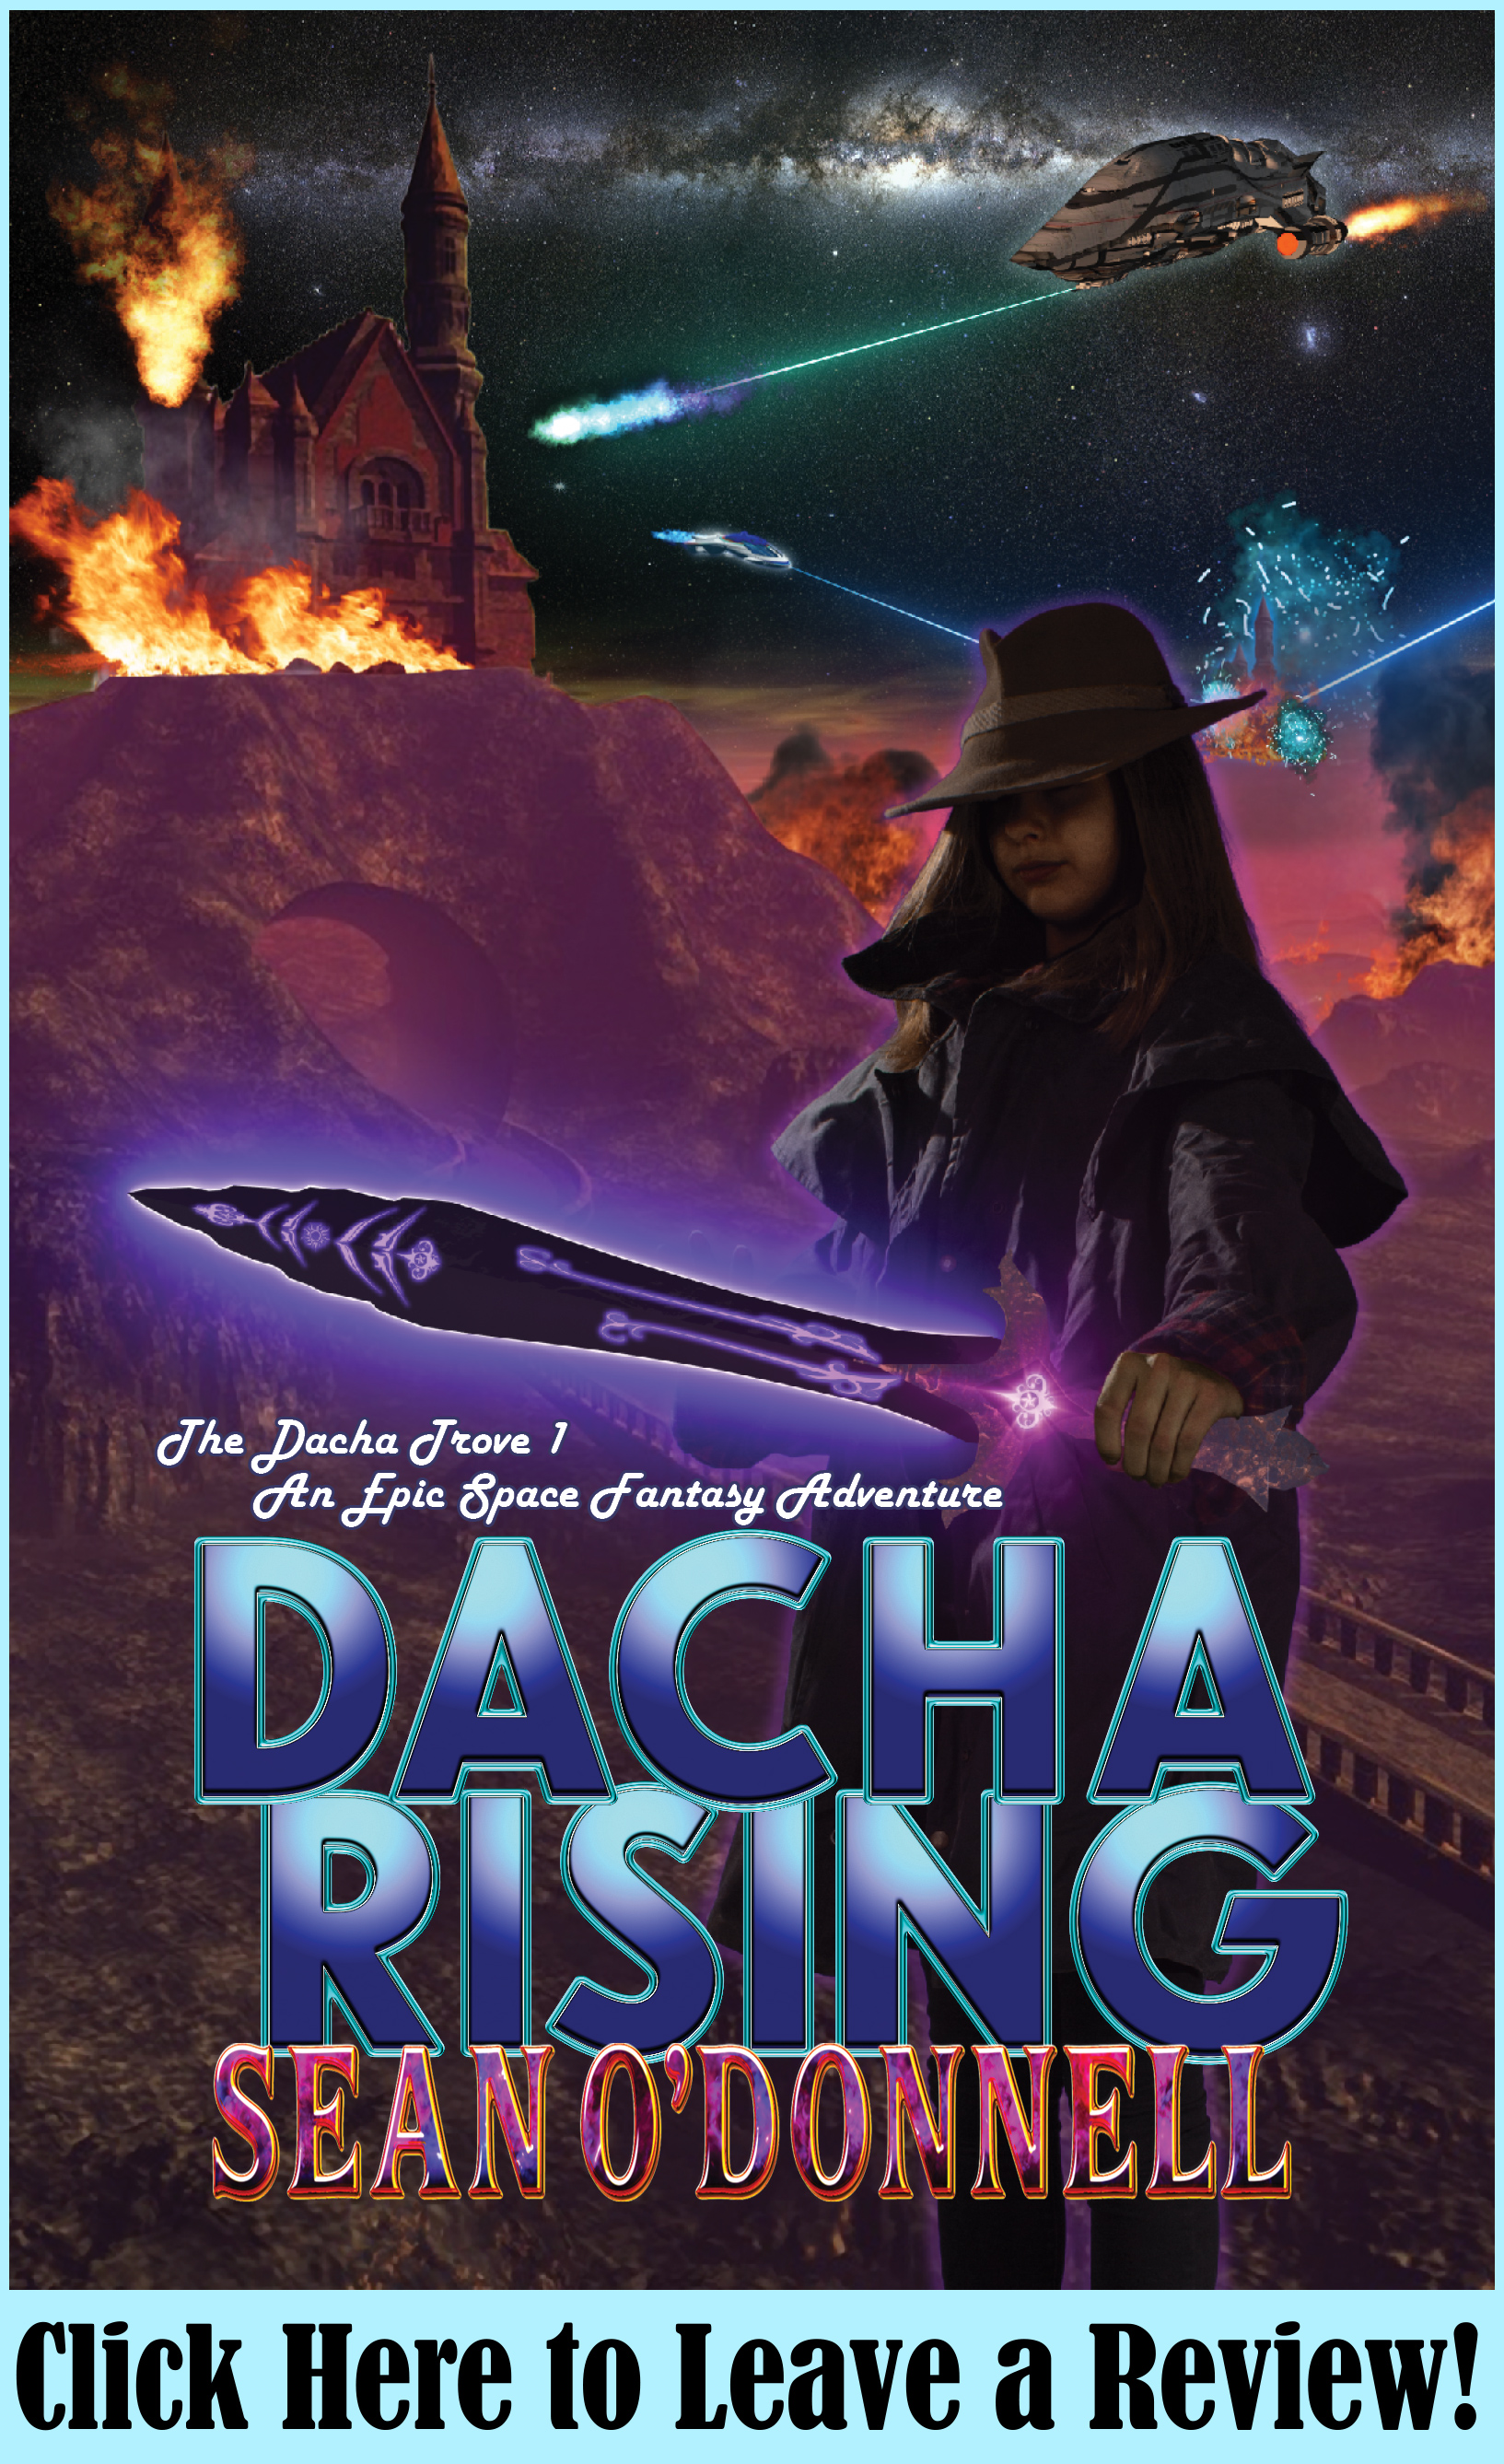 Click to Review Dacha Rising ... and Thank You!